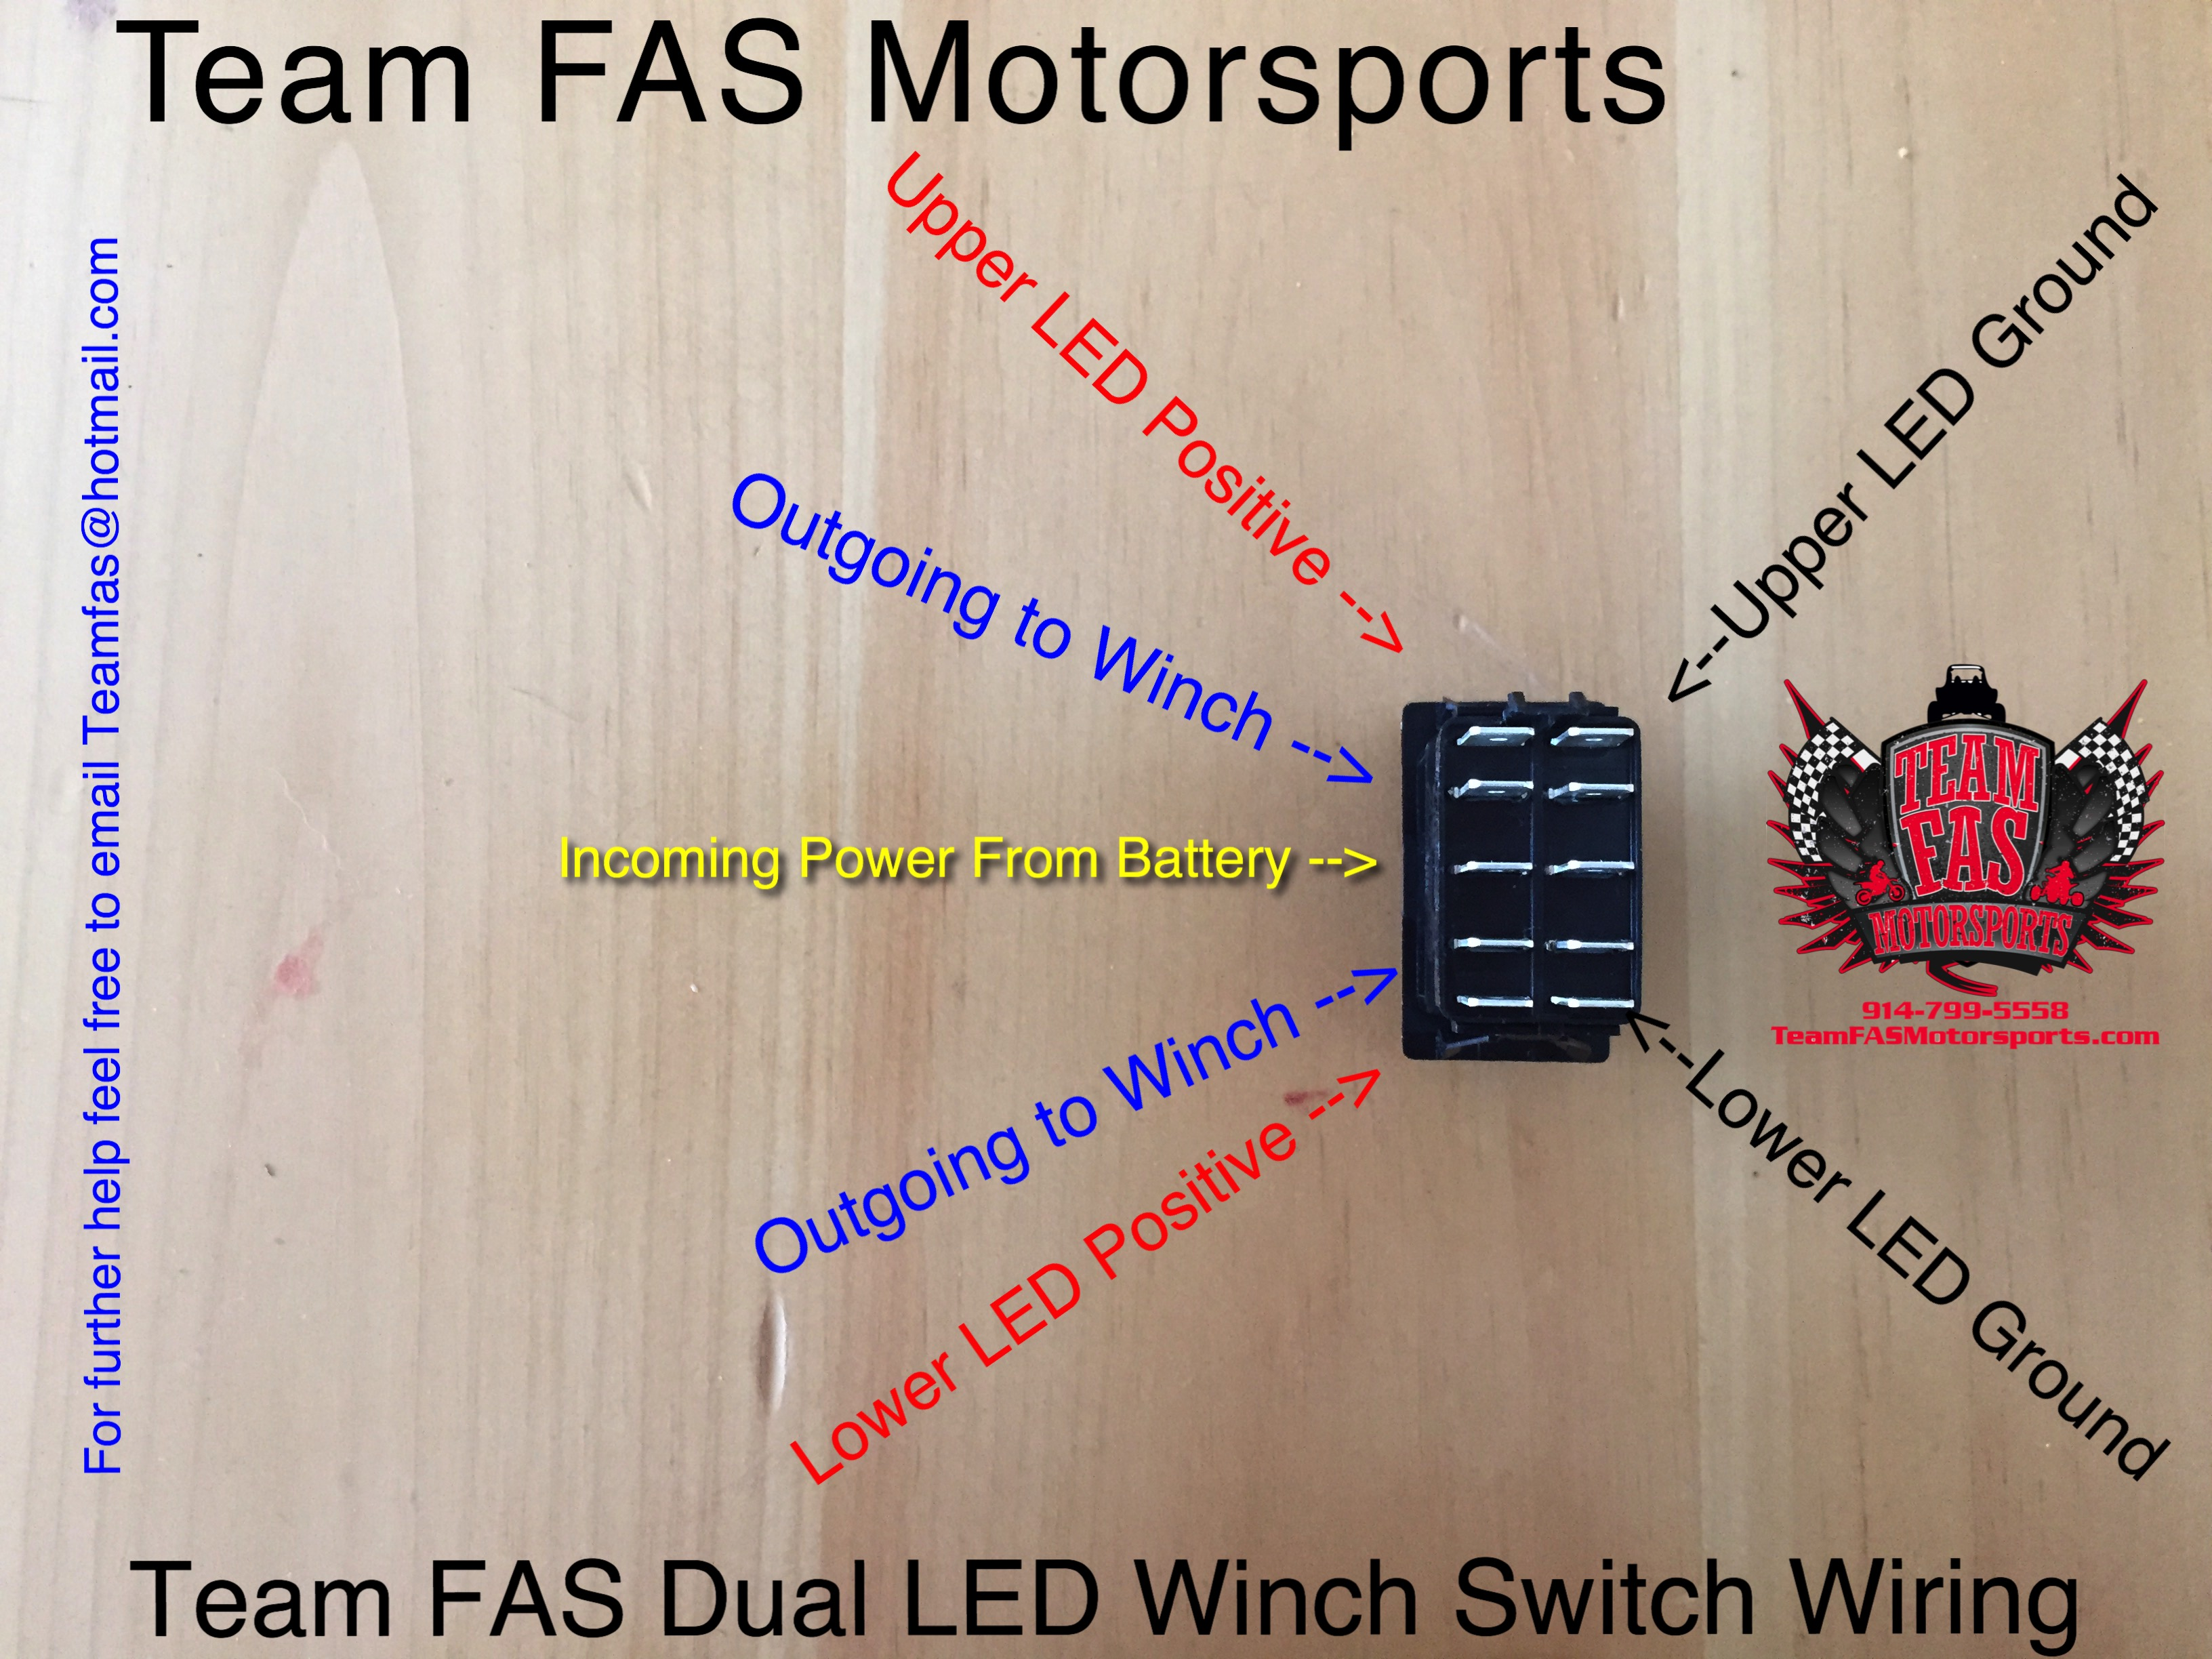 Wiring Diagrams Diagram For A Winch Team Fas Motorsports Dual Led On Off Switch